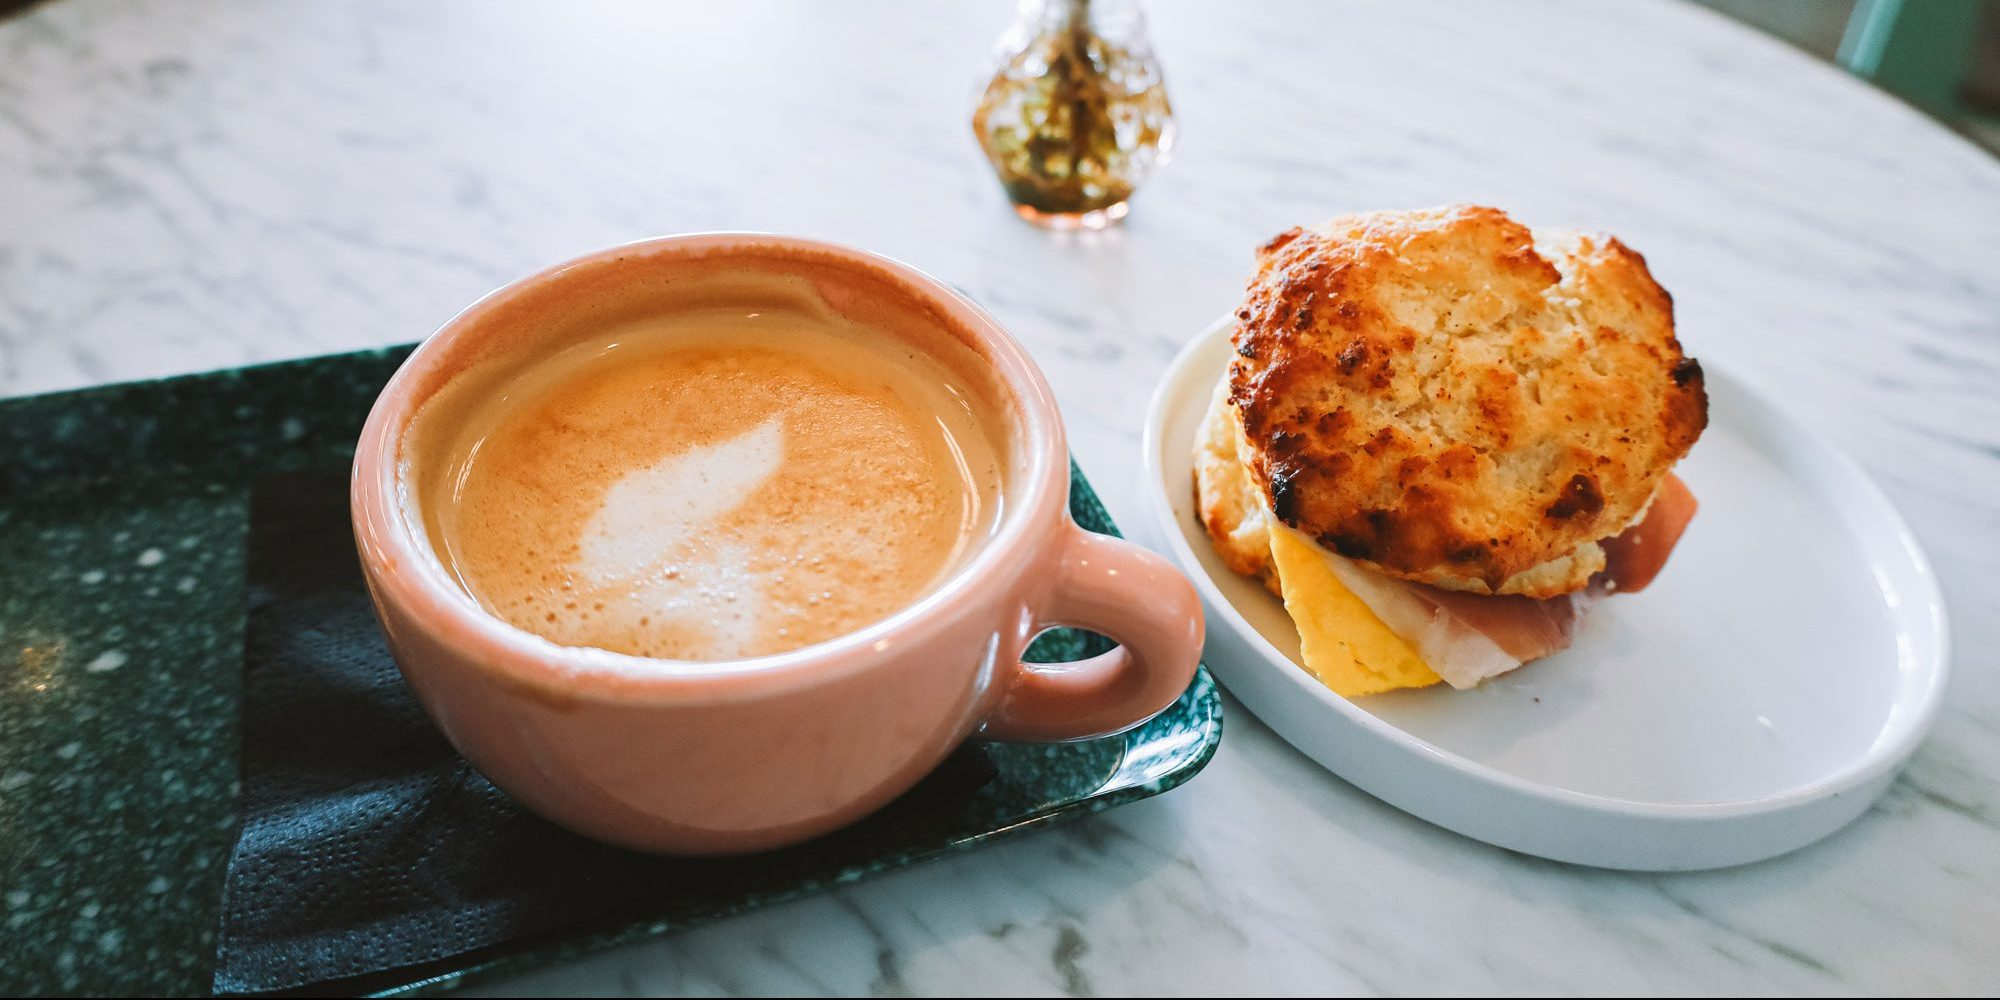 A cappuccino and a freshly made breakfast sandwich.